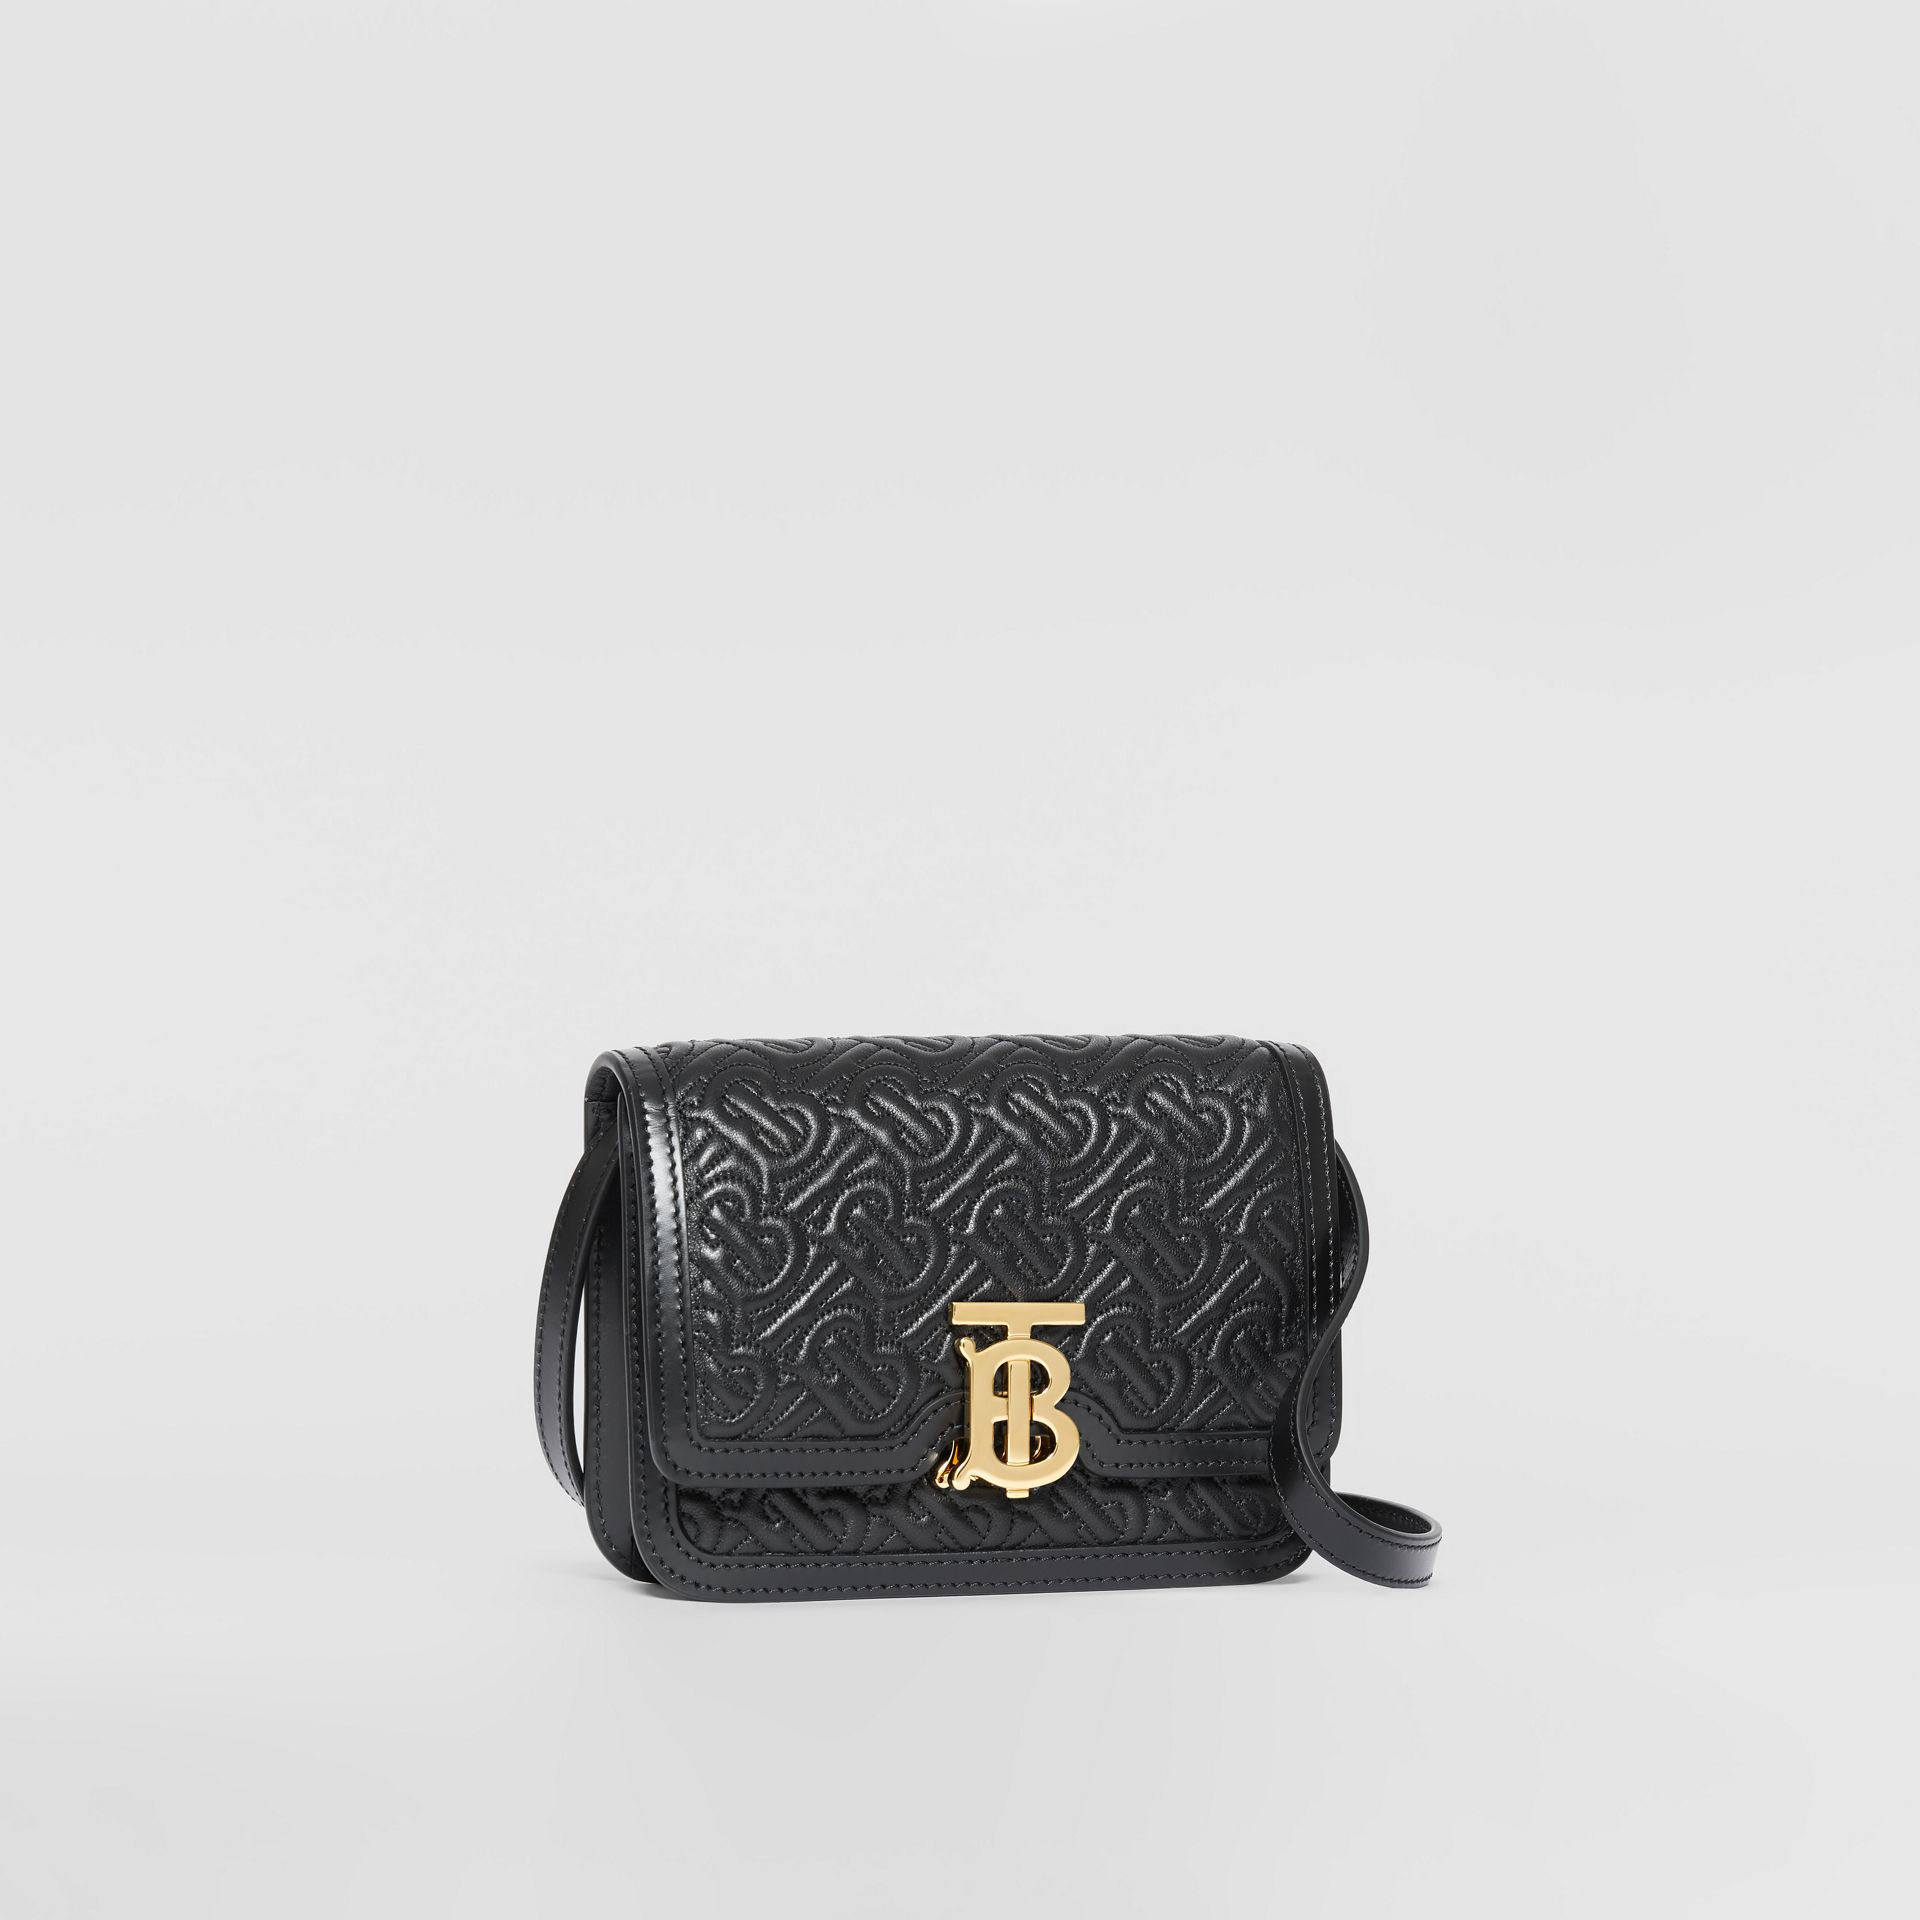 Mini Quilted Monogram Lambskin TB Bag in Black - Women | Burberry - gallery image 4